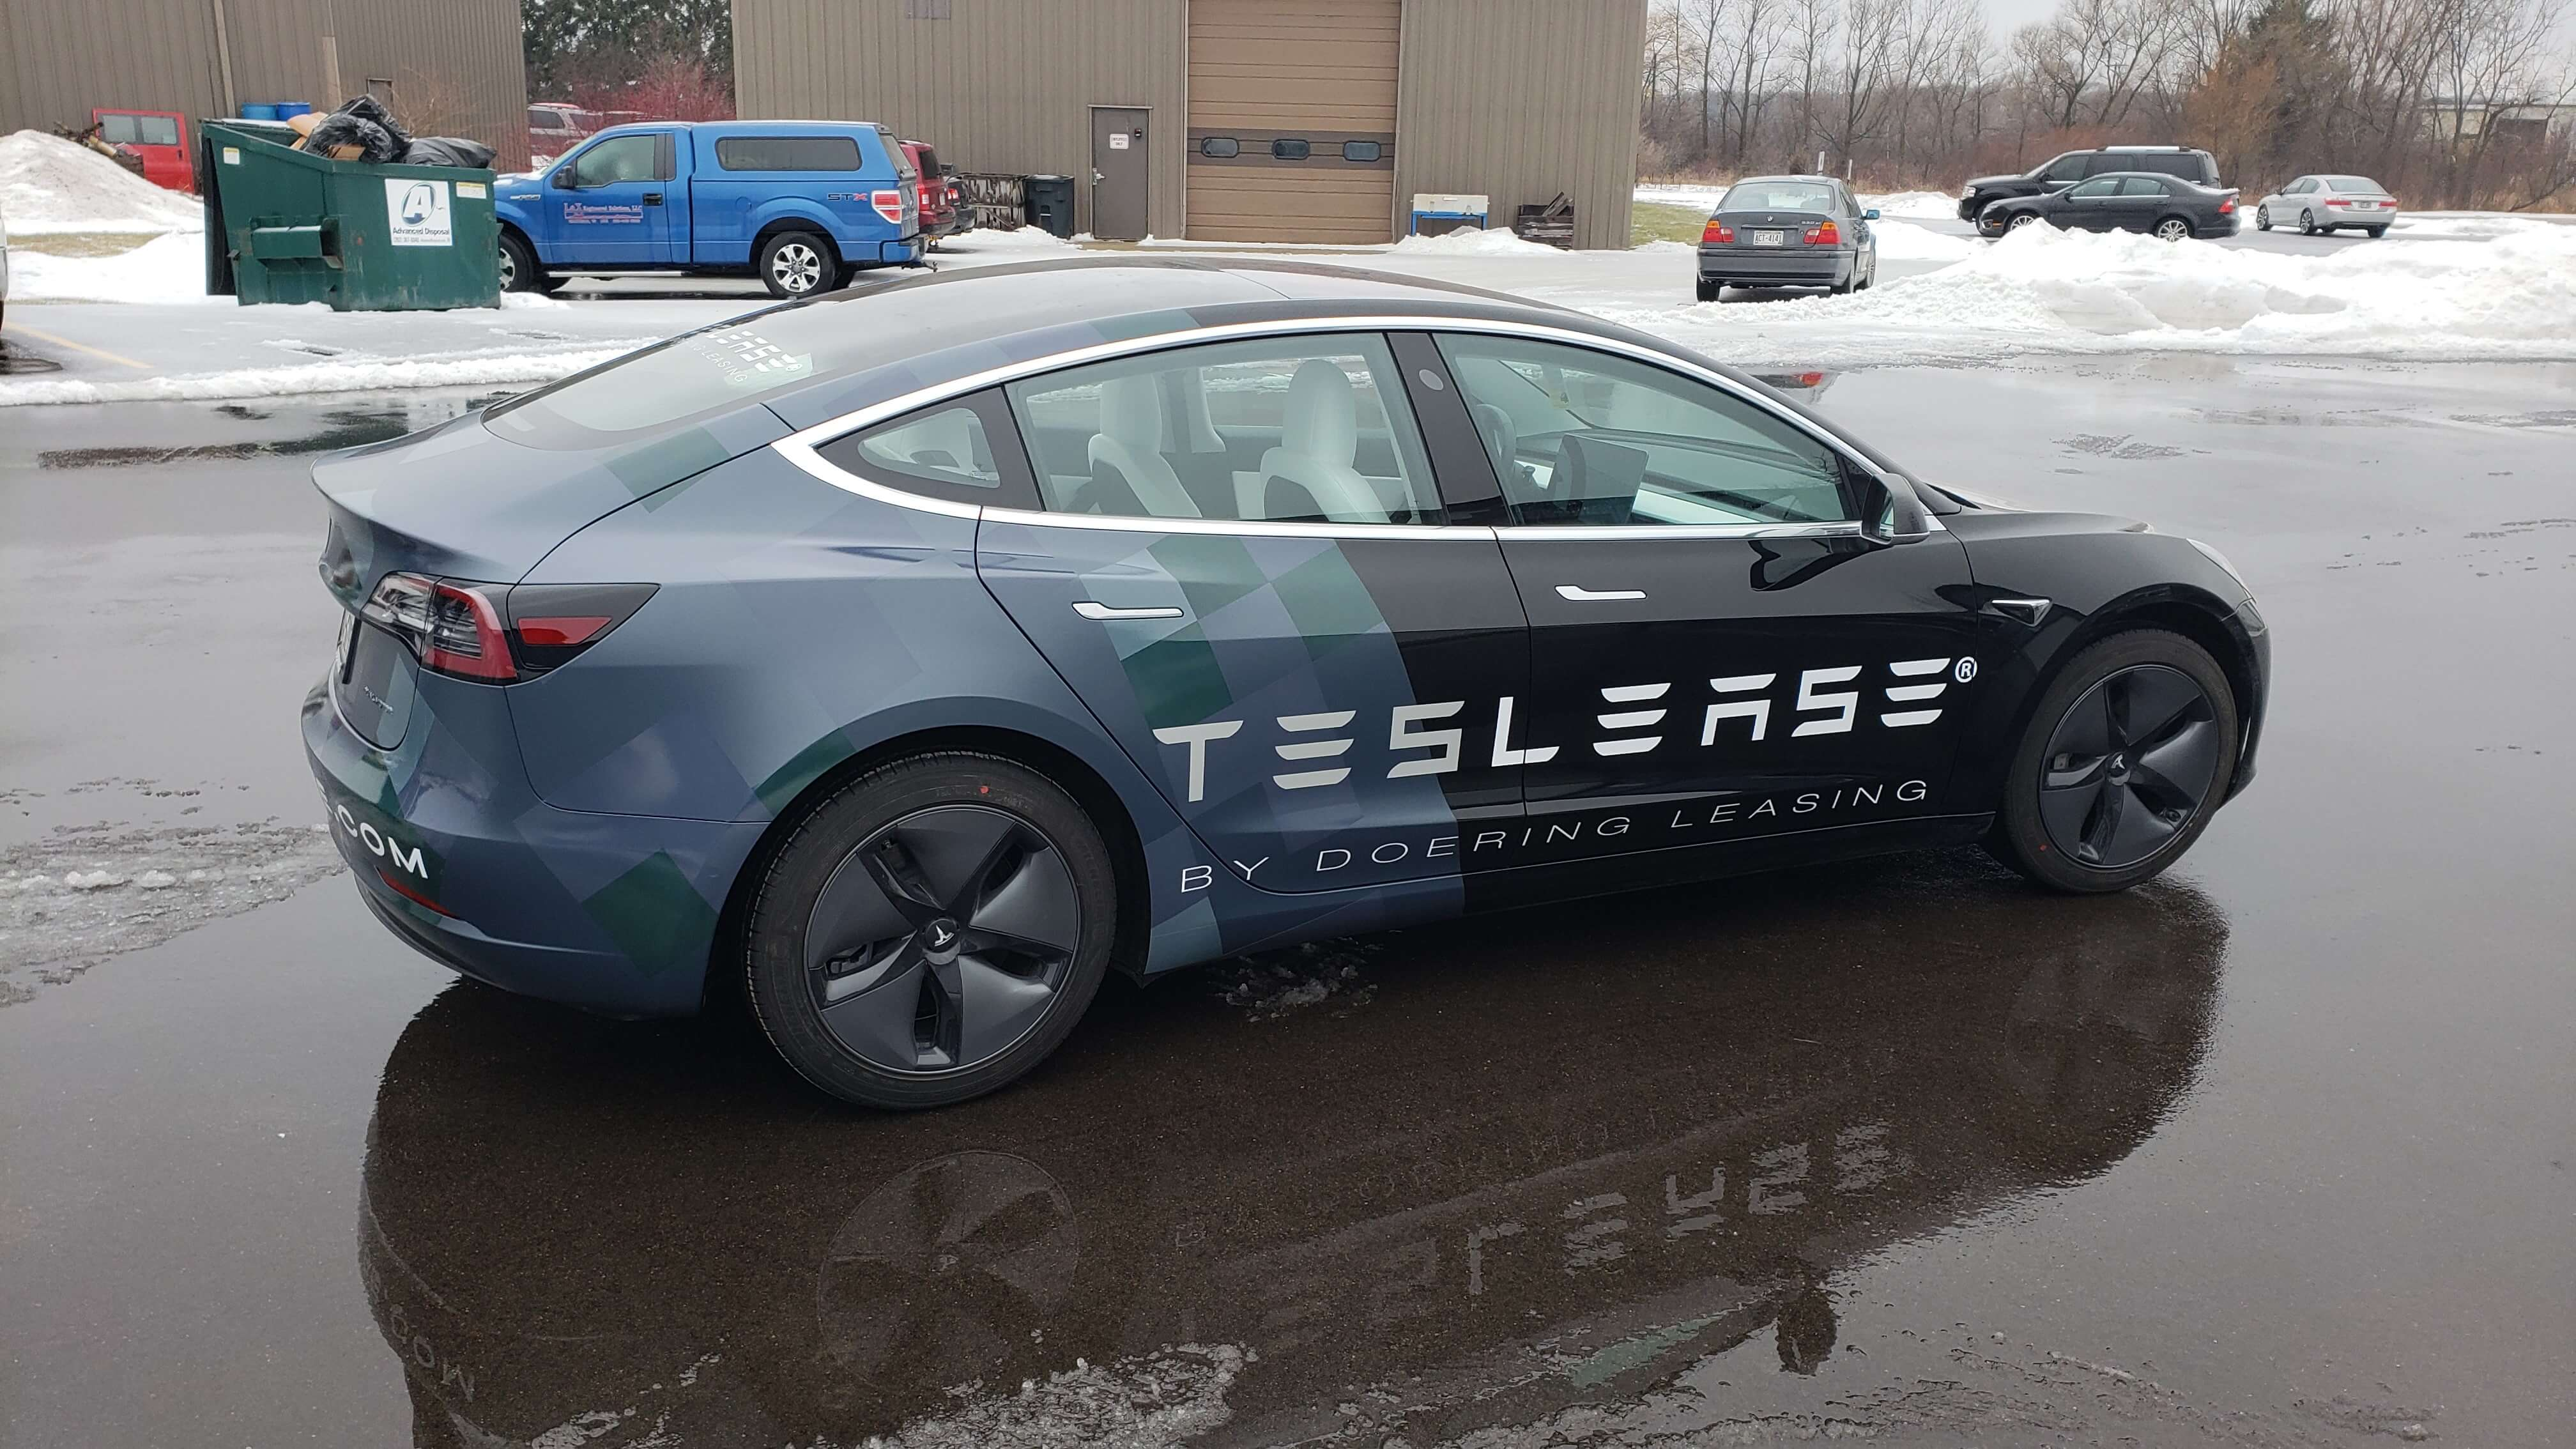 Tesla Lease Vinyl Graphics by Signs and Lines, full custom wrap designed for the Tesla Model 3